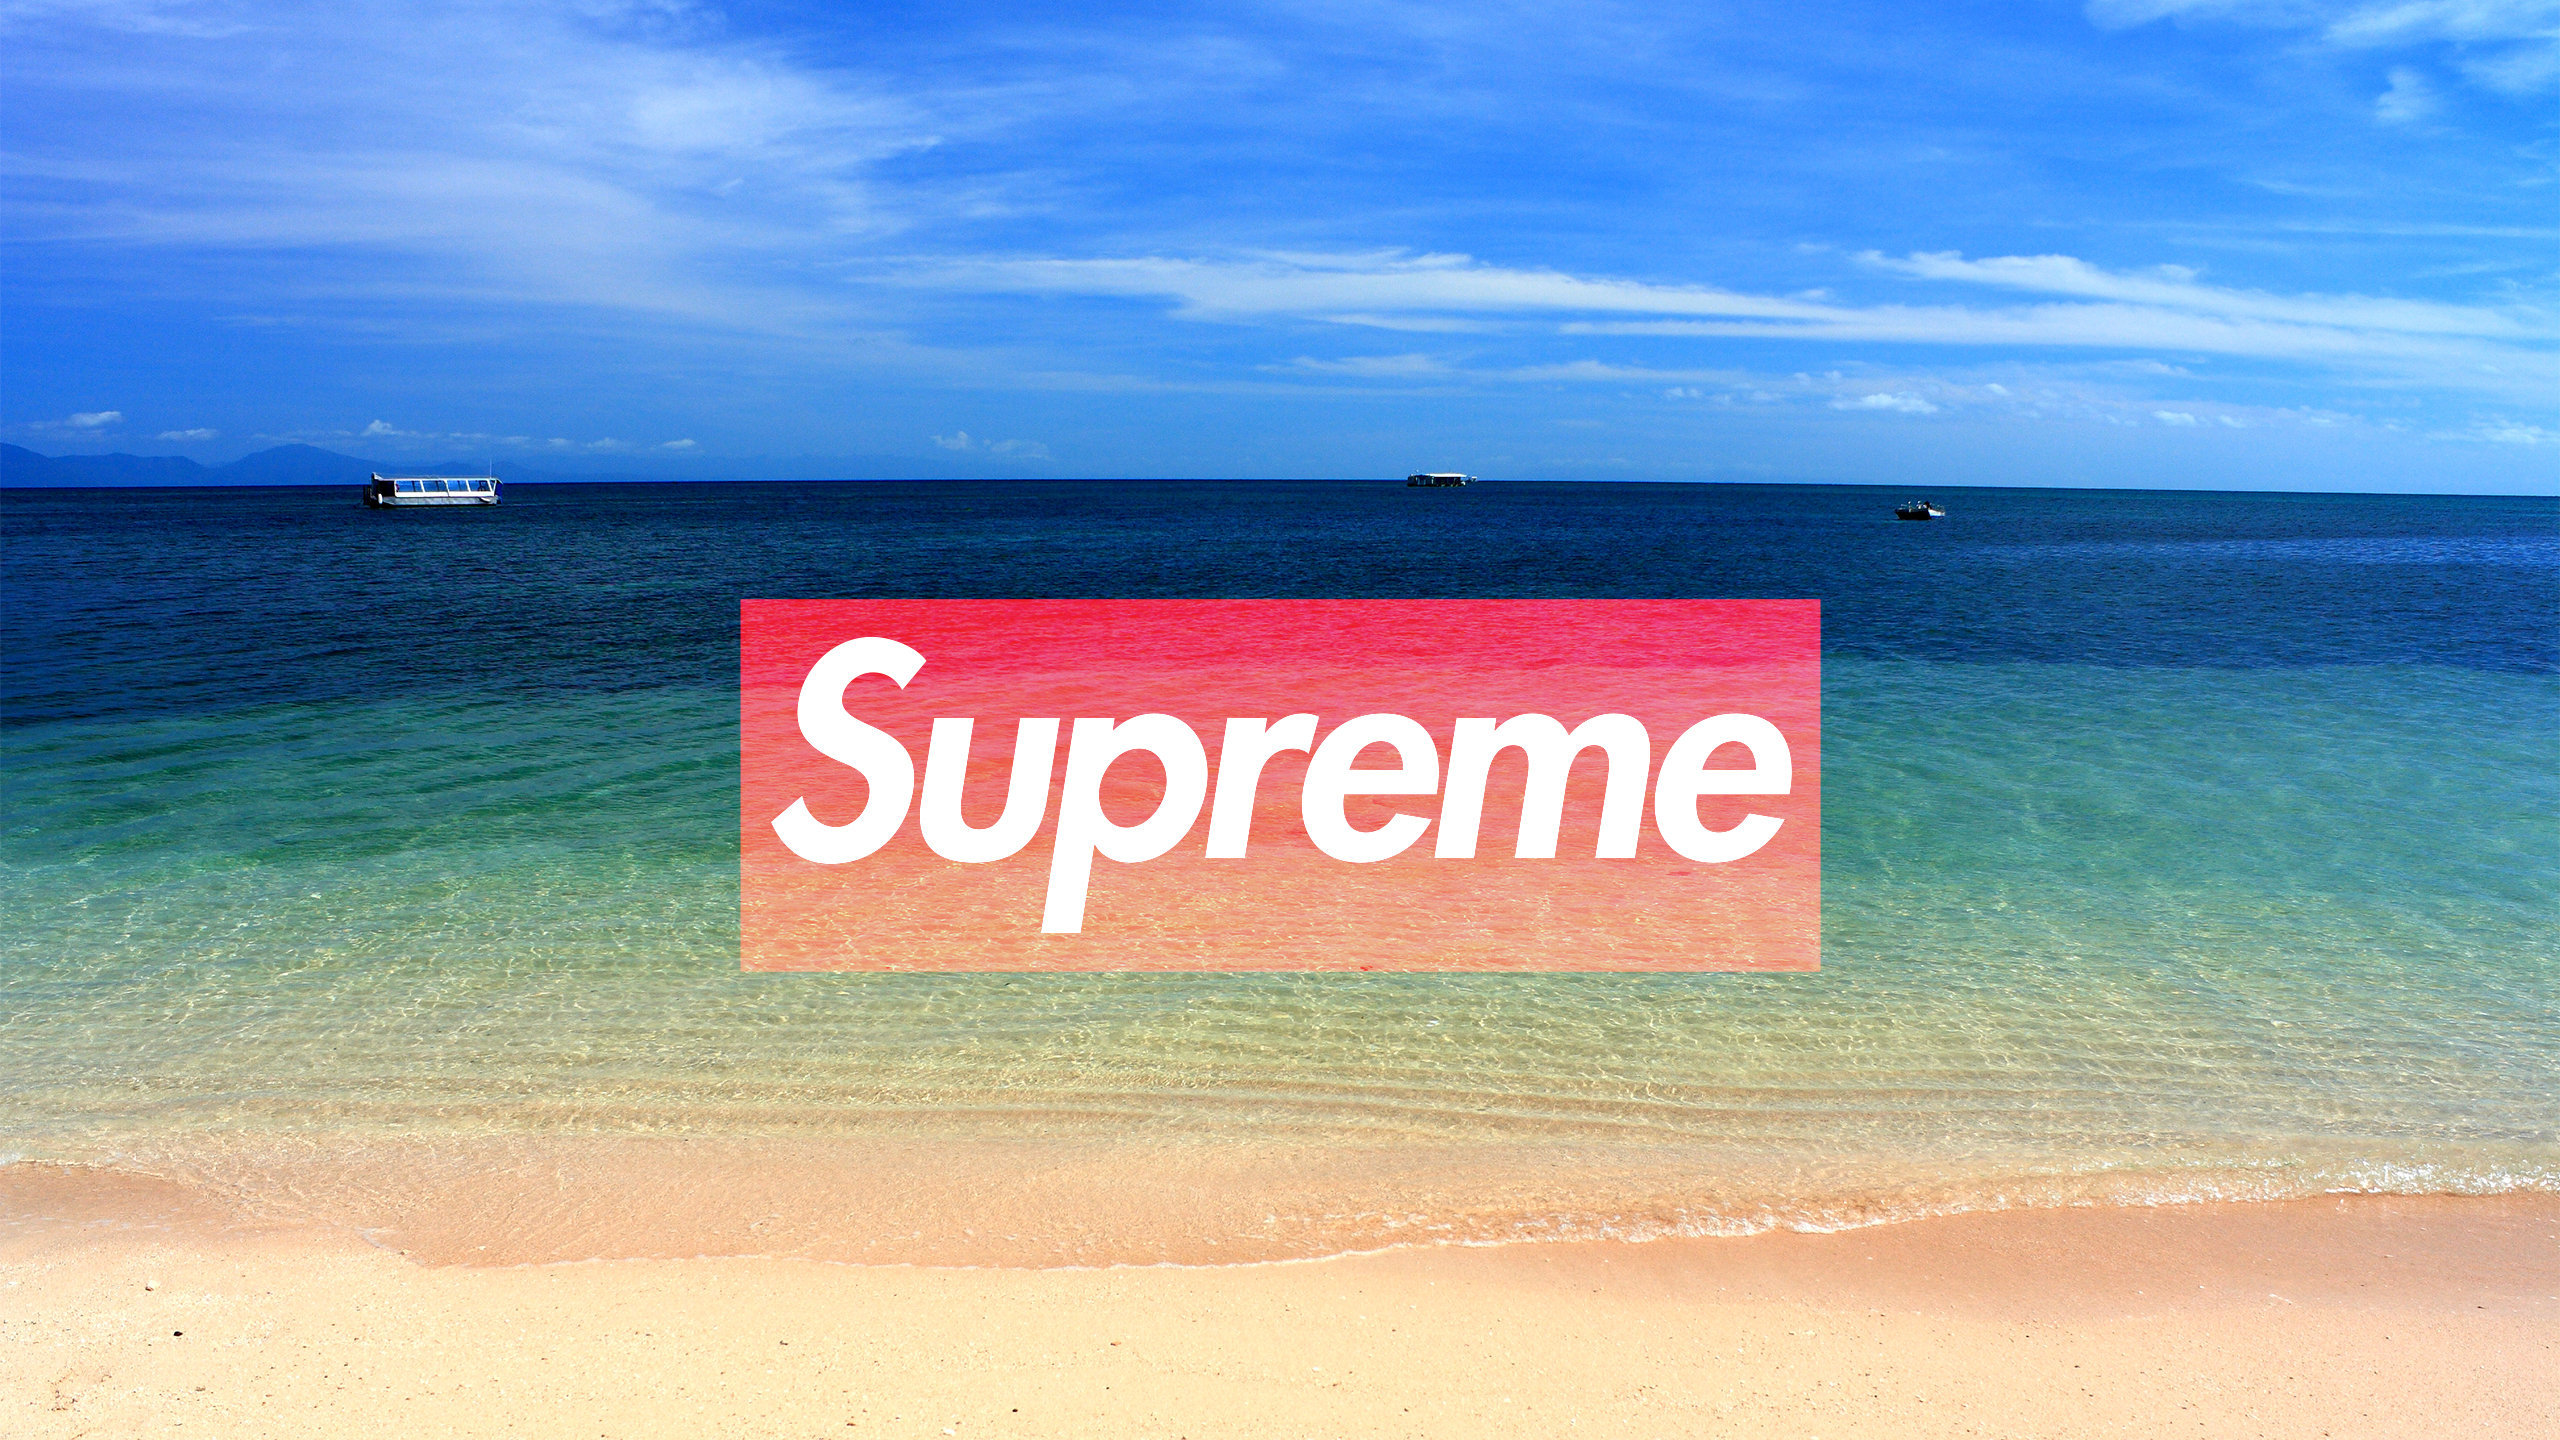 Supreme Wallpapers Picture Is Cool Wallpapers Supreme Cool Wallpapers Hd 2560x1440 Download Hd Wallpaper Wallpapertip